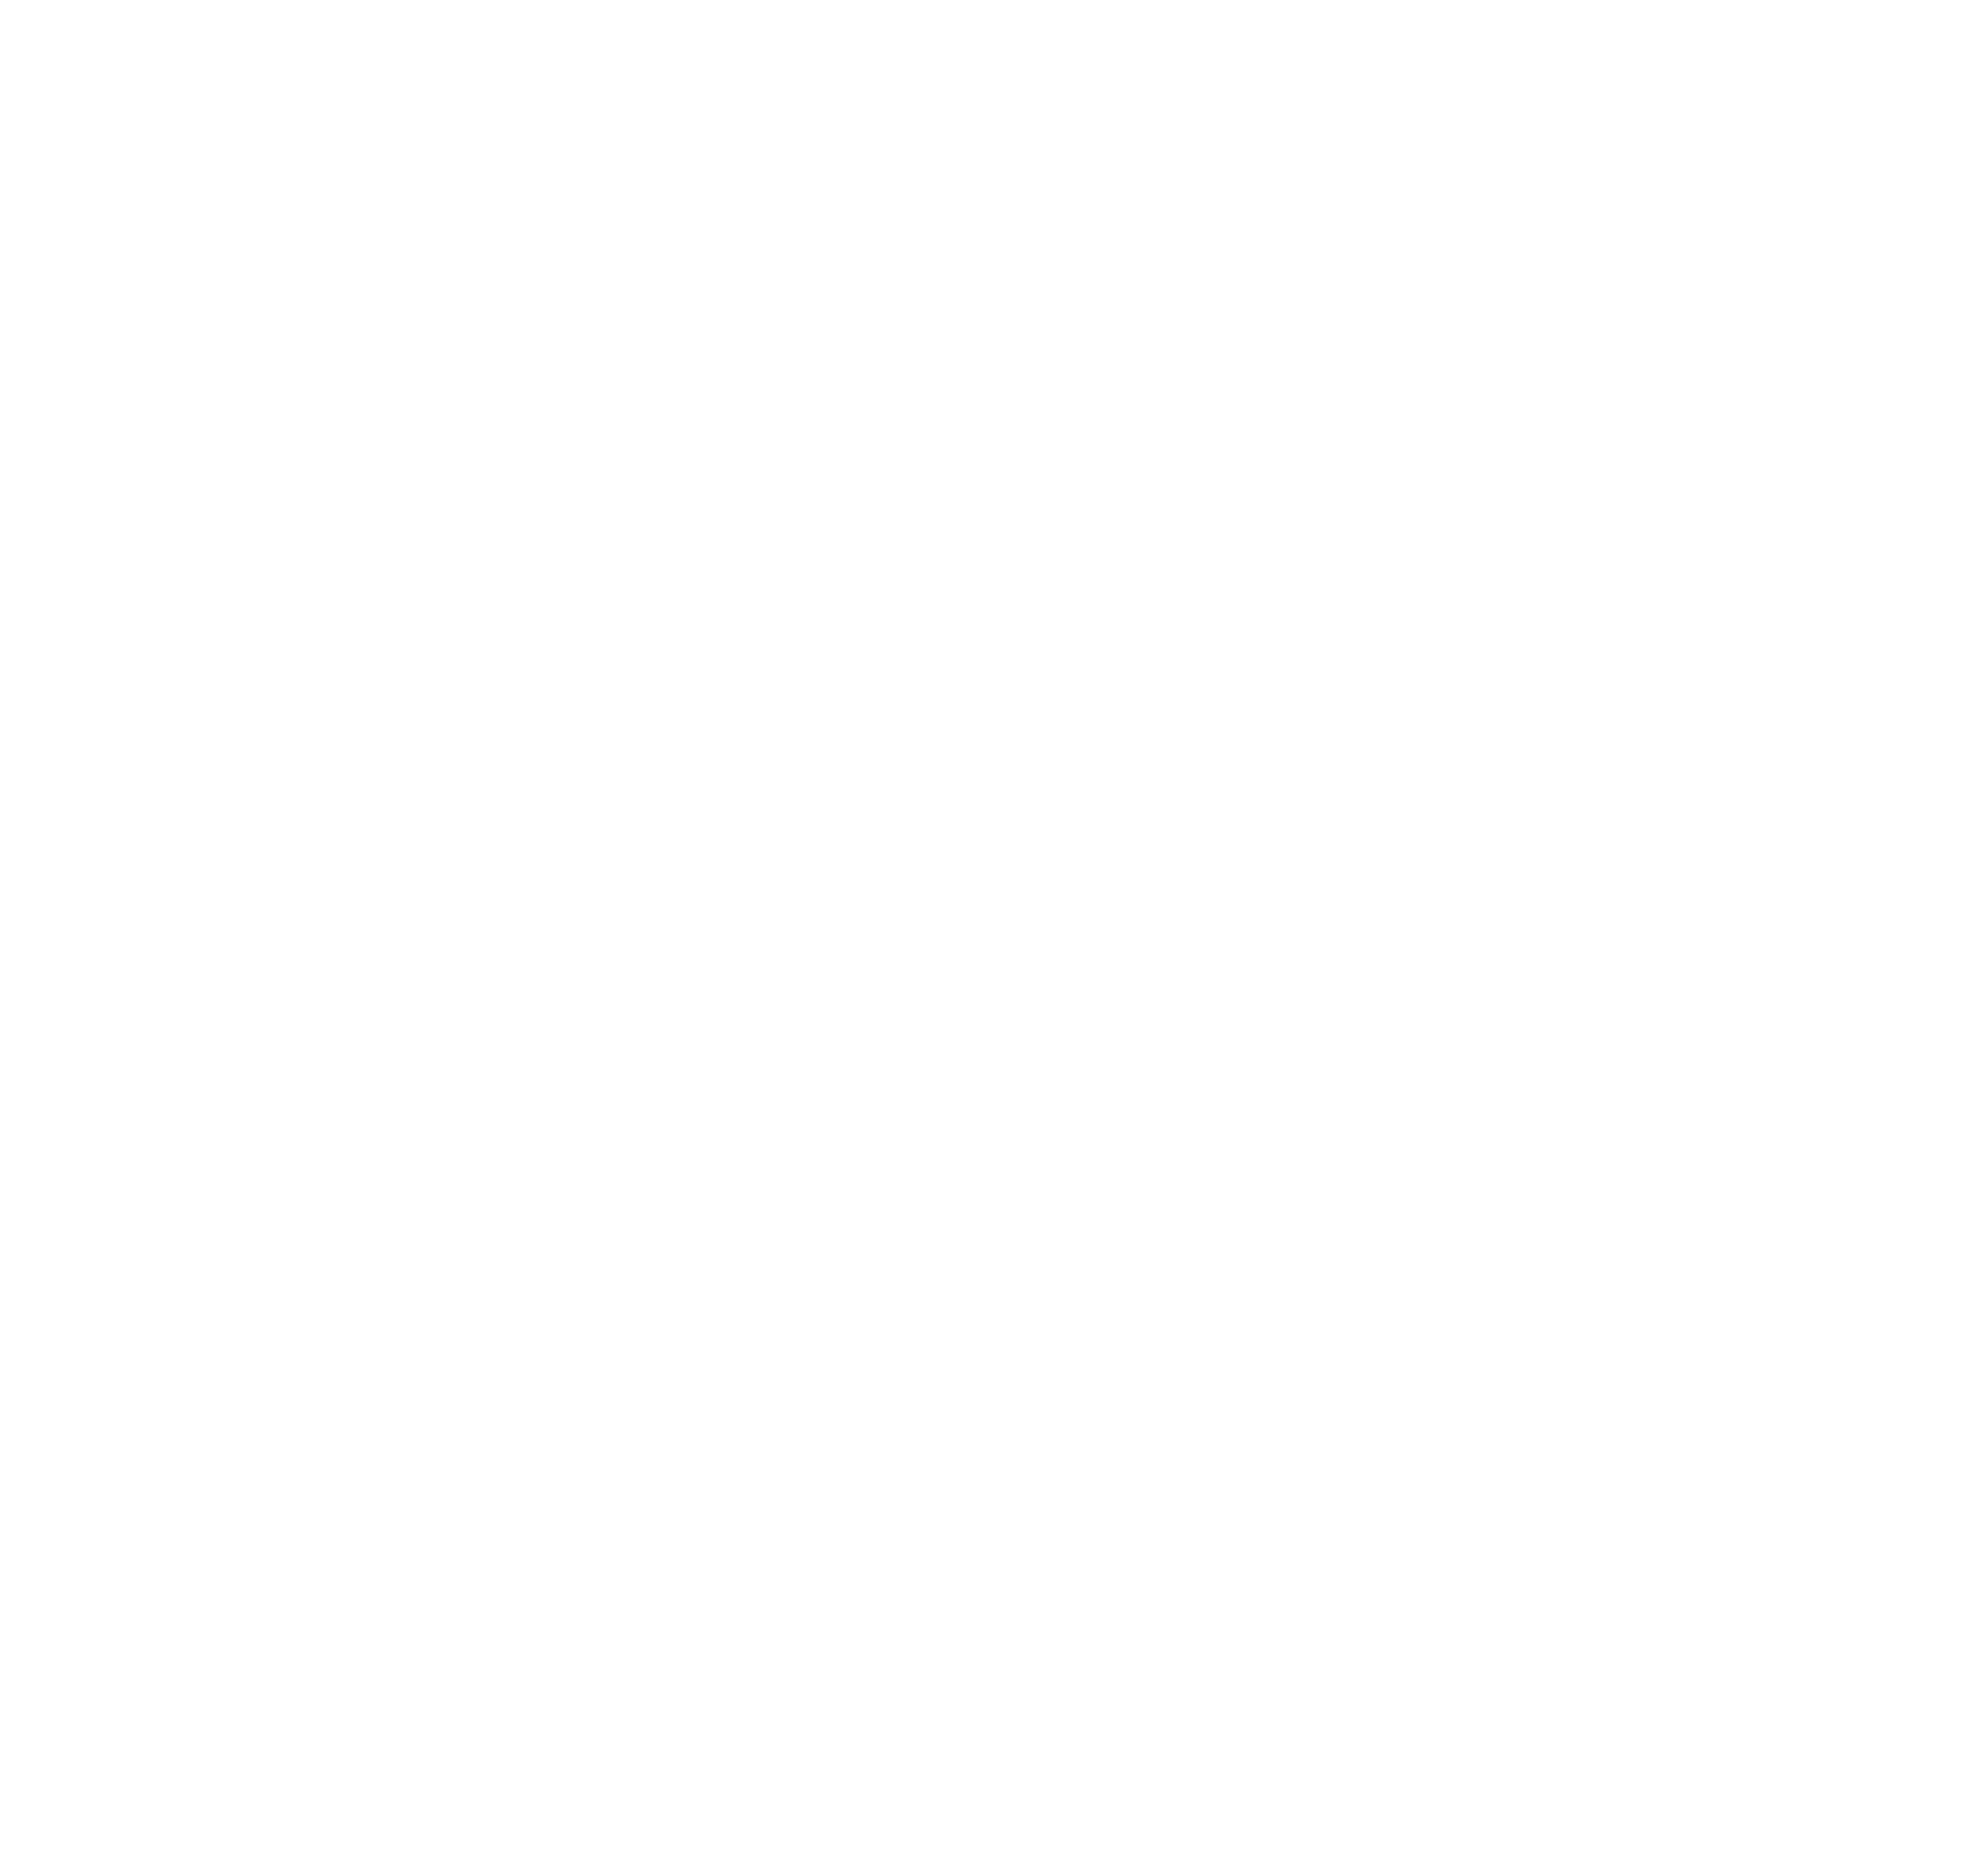 BRIDGEMANS CREST LOGO - WHITE.png